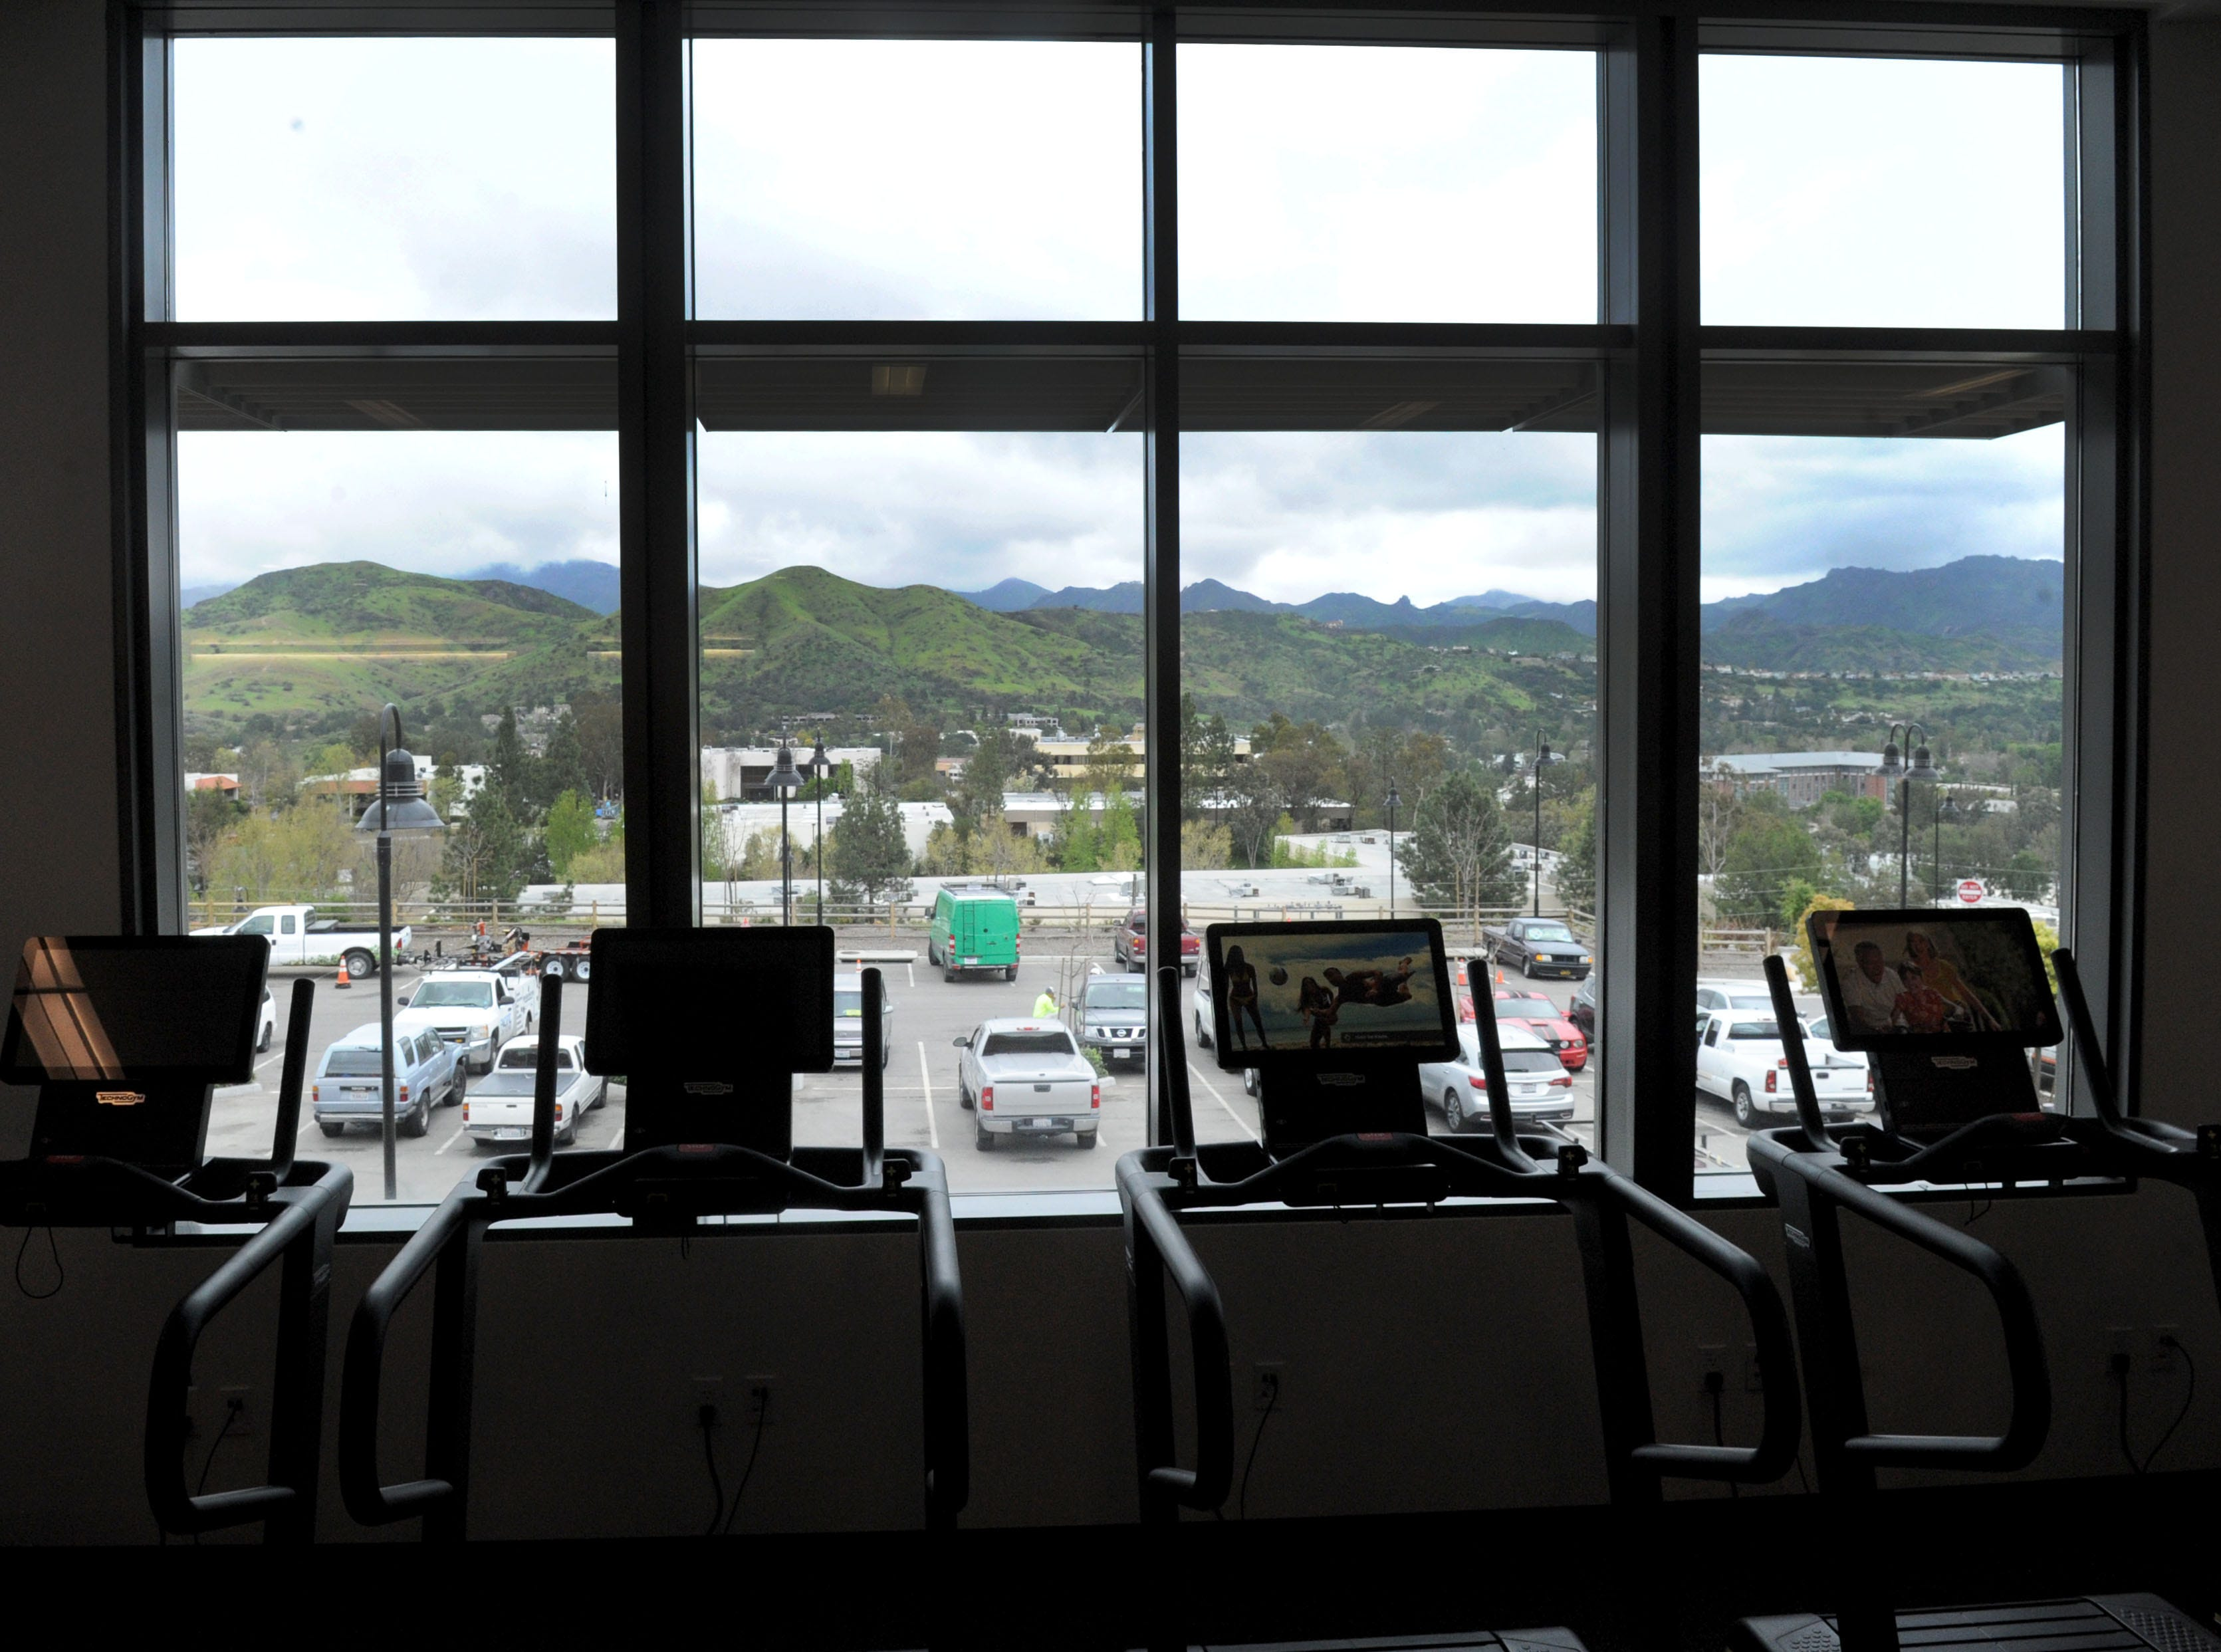 The gym at the new Yarrow Family YMCA in Westlake Village offers spectacular views. The club's grand opening is April 27.